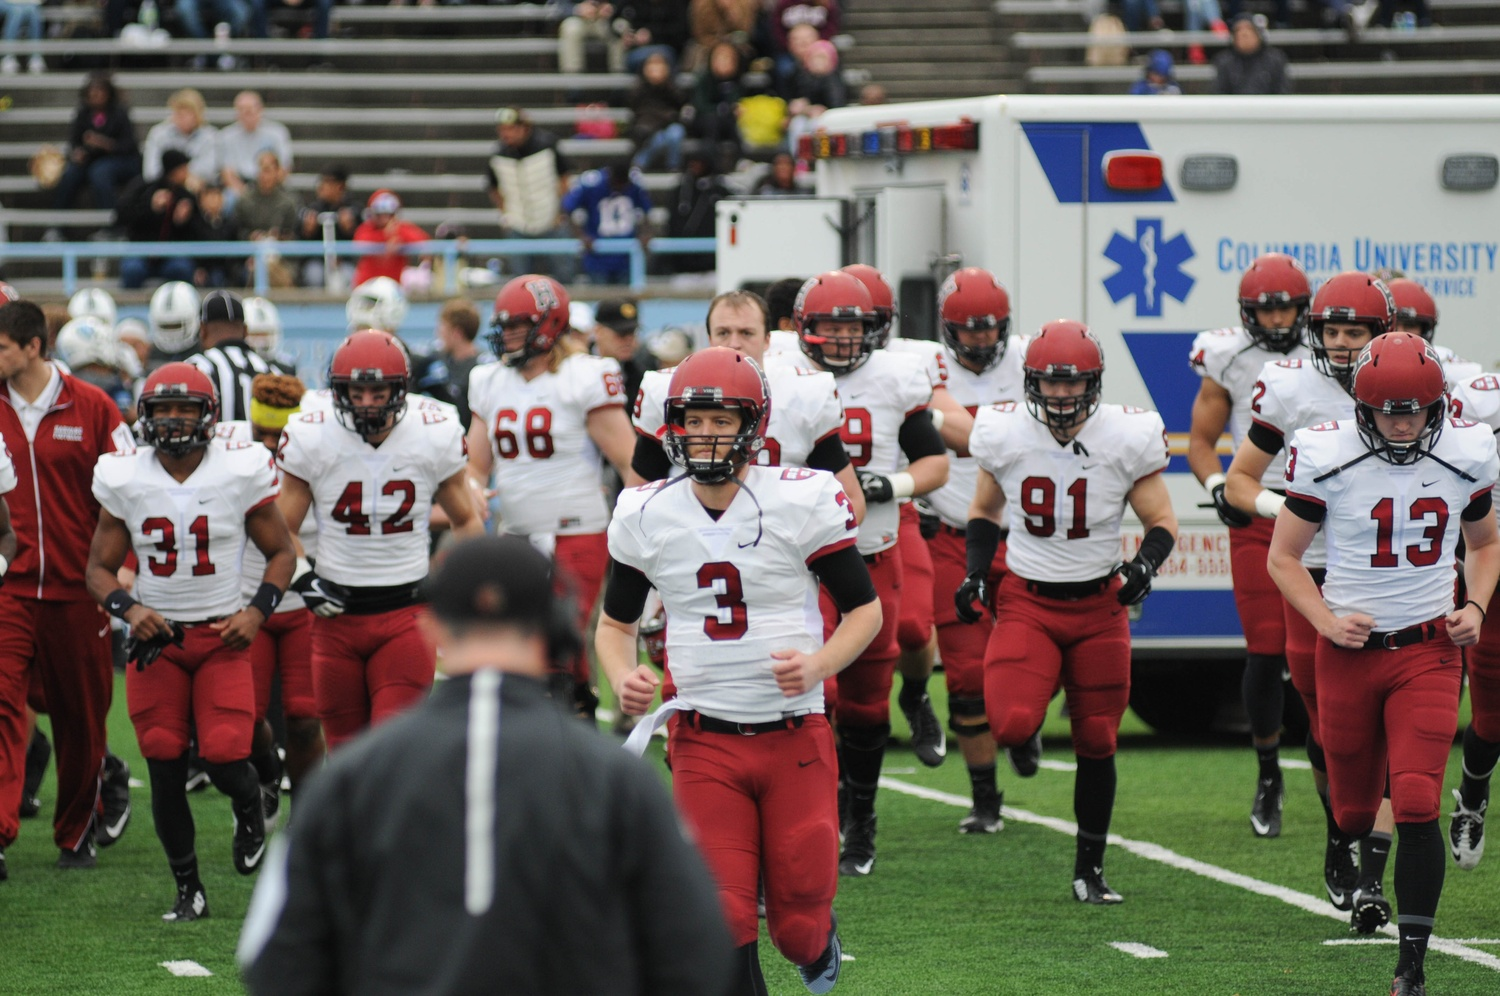 Senior quarterback Scott Hosch and the Harvard football team earned their 22nd consecutive win on Saturday.